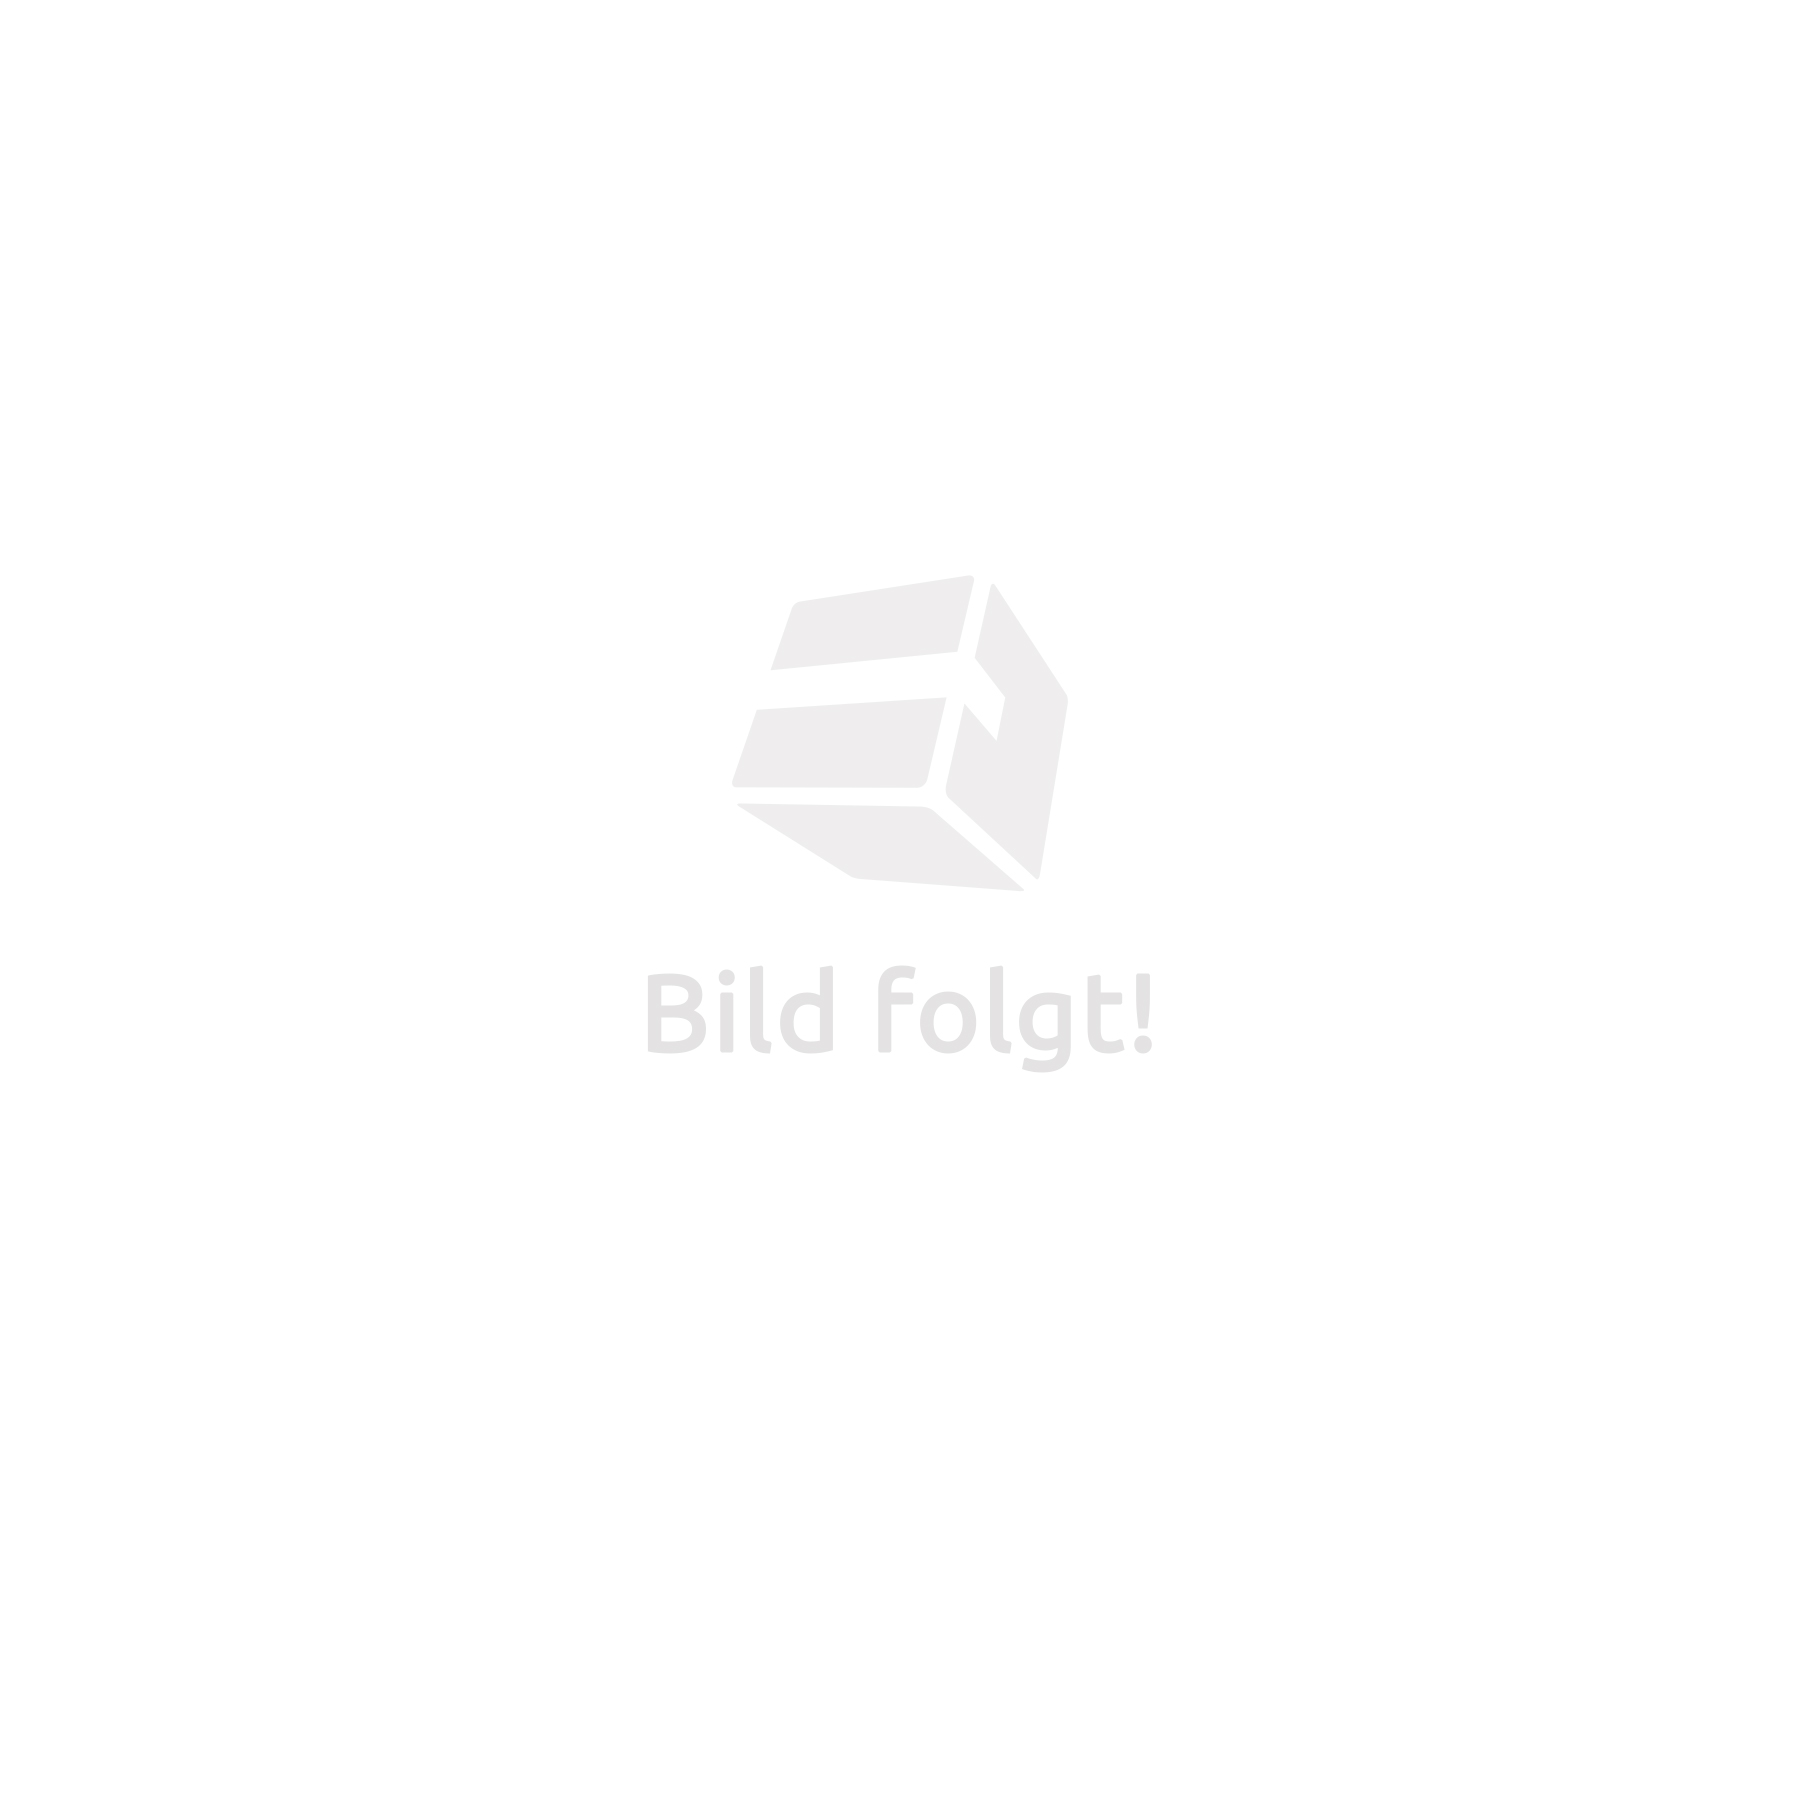 Toile Protection Soleil Voile D 39ombrage Triangle Protection Uv Solaire Toile